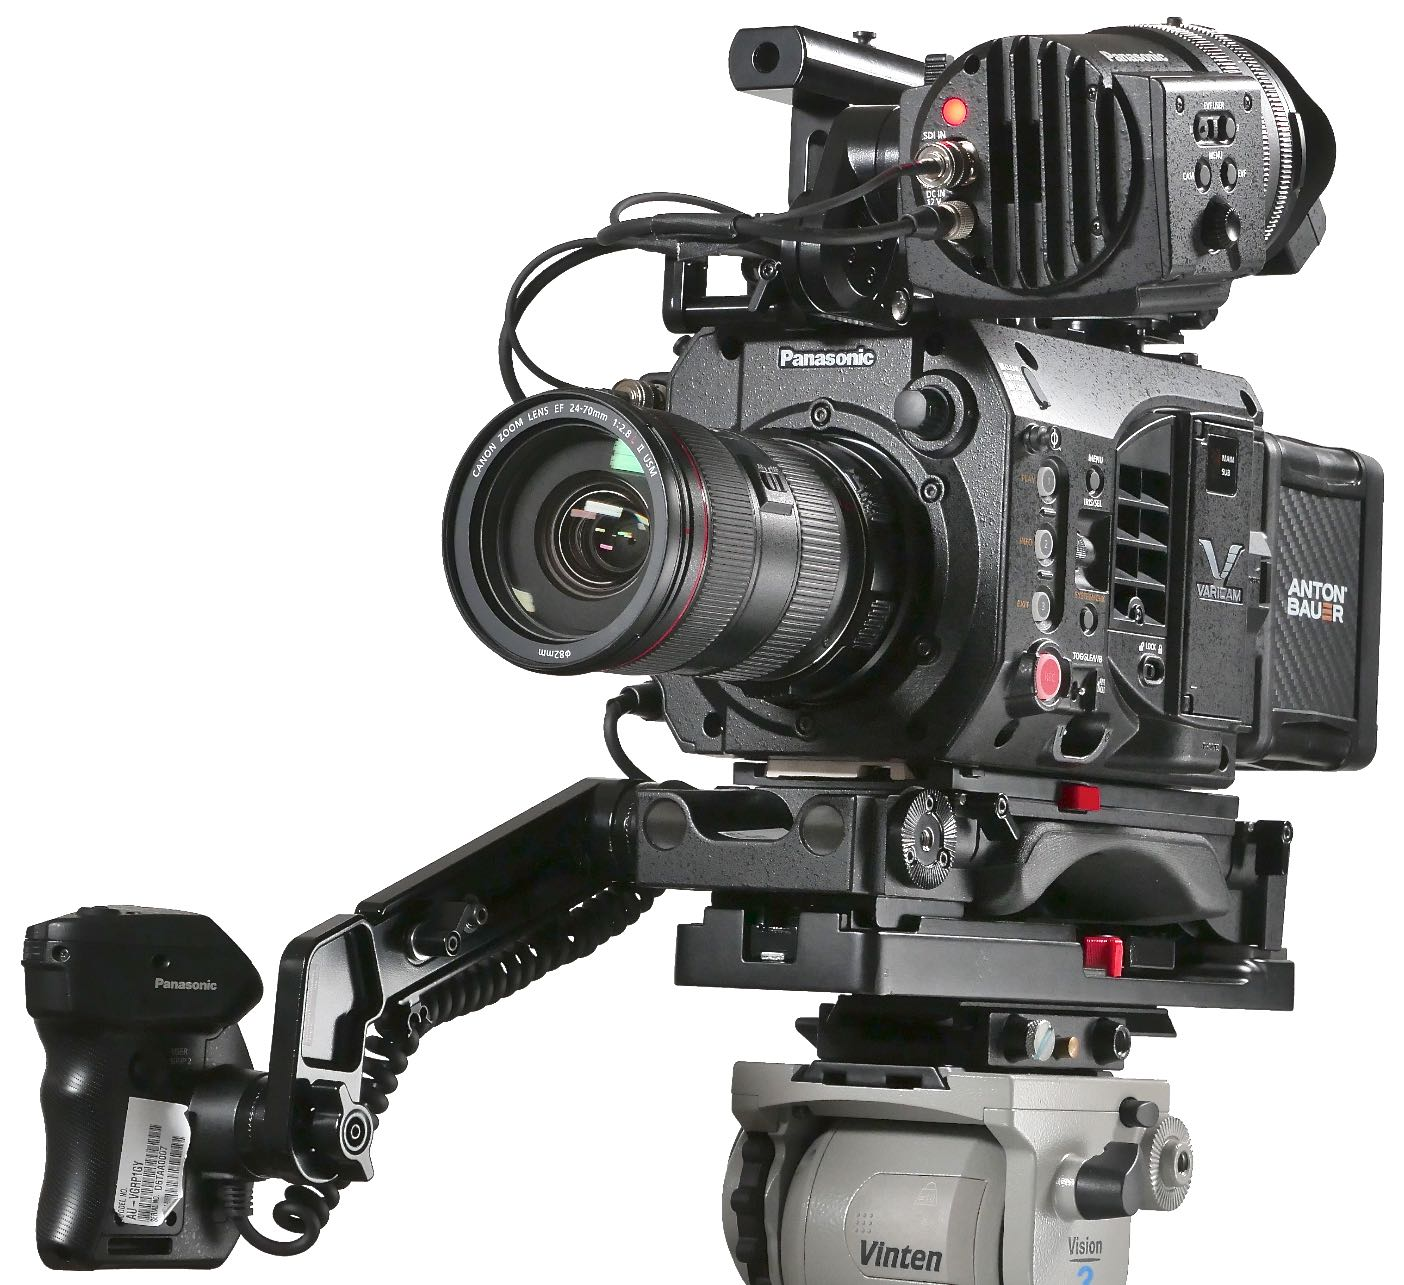 Review Panasonic Varicam Lt 4k Super35mm Cine Camera By Adam Wilt Push The Meter Into Black Mounting Flange From Back Until It